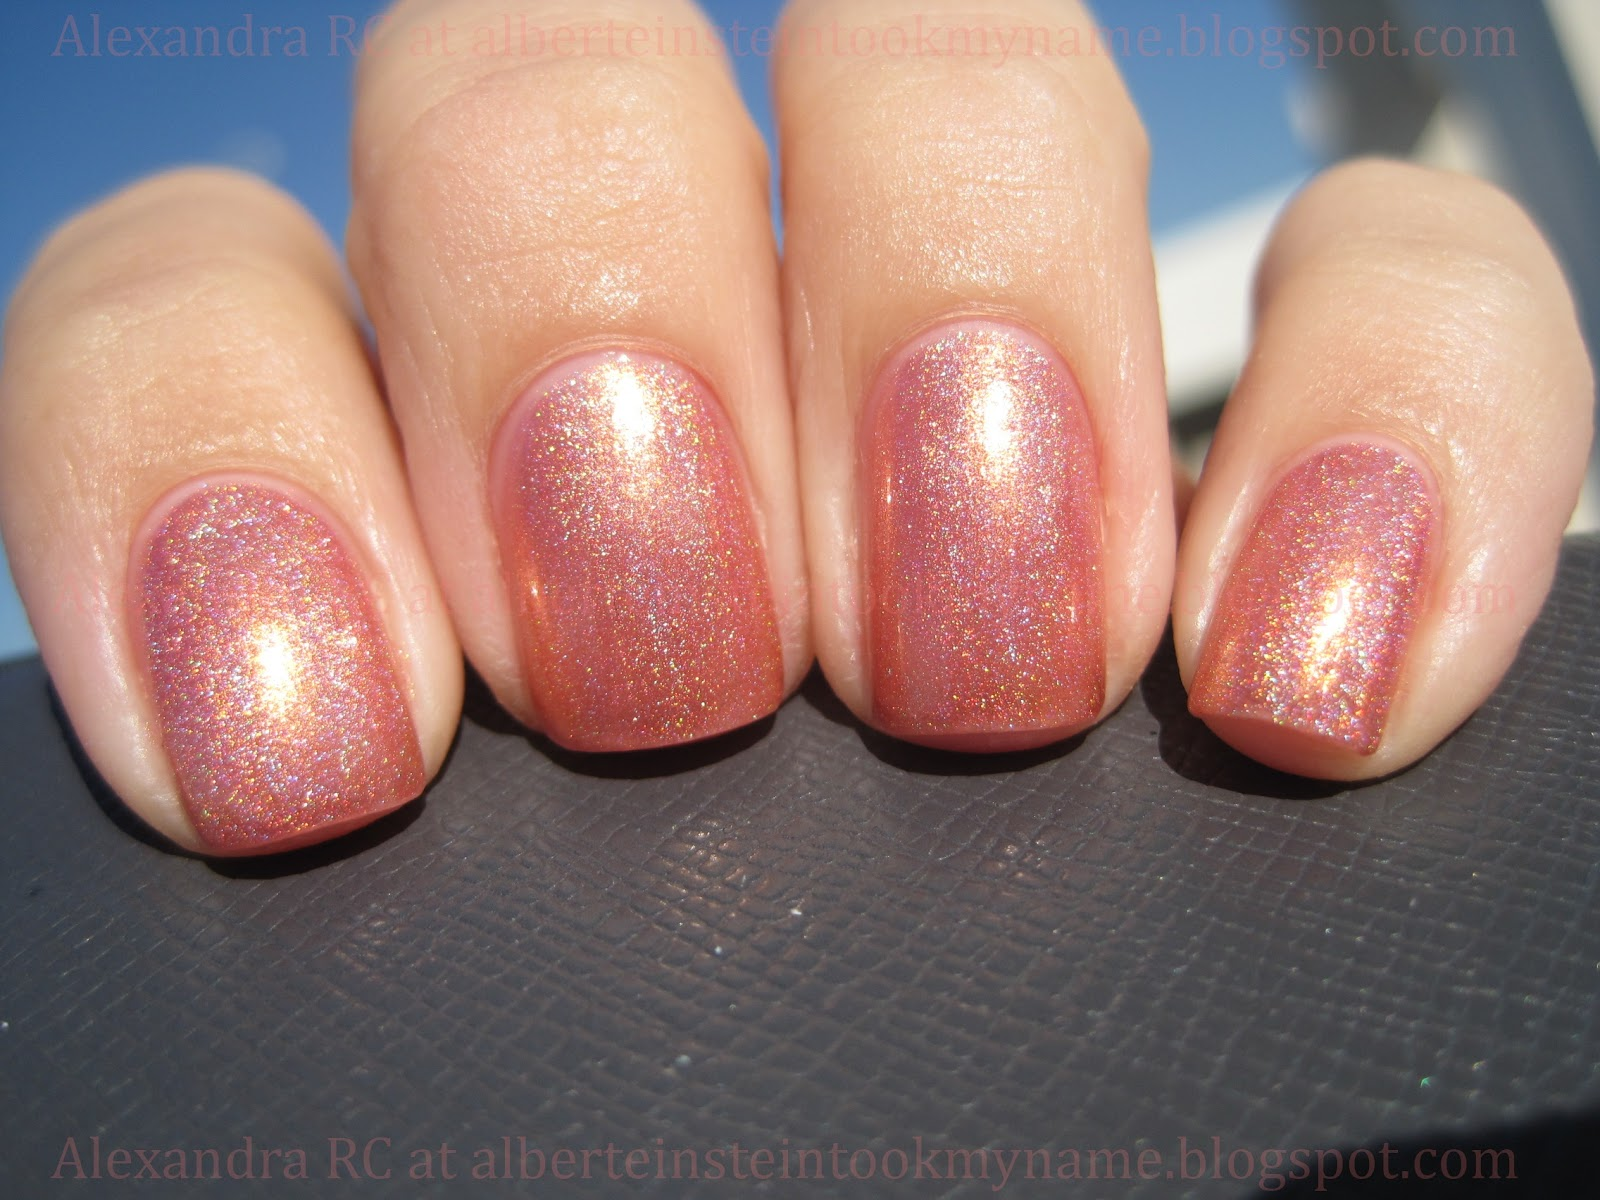 Sparkly Vernis: OPI Day At The Peach is the perfect peach nail polish